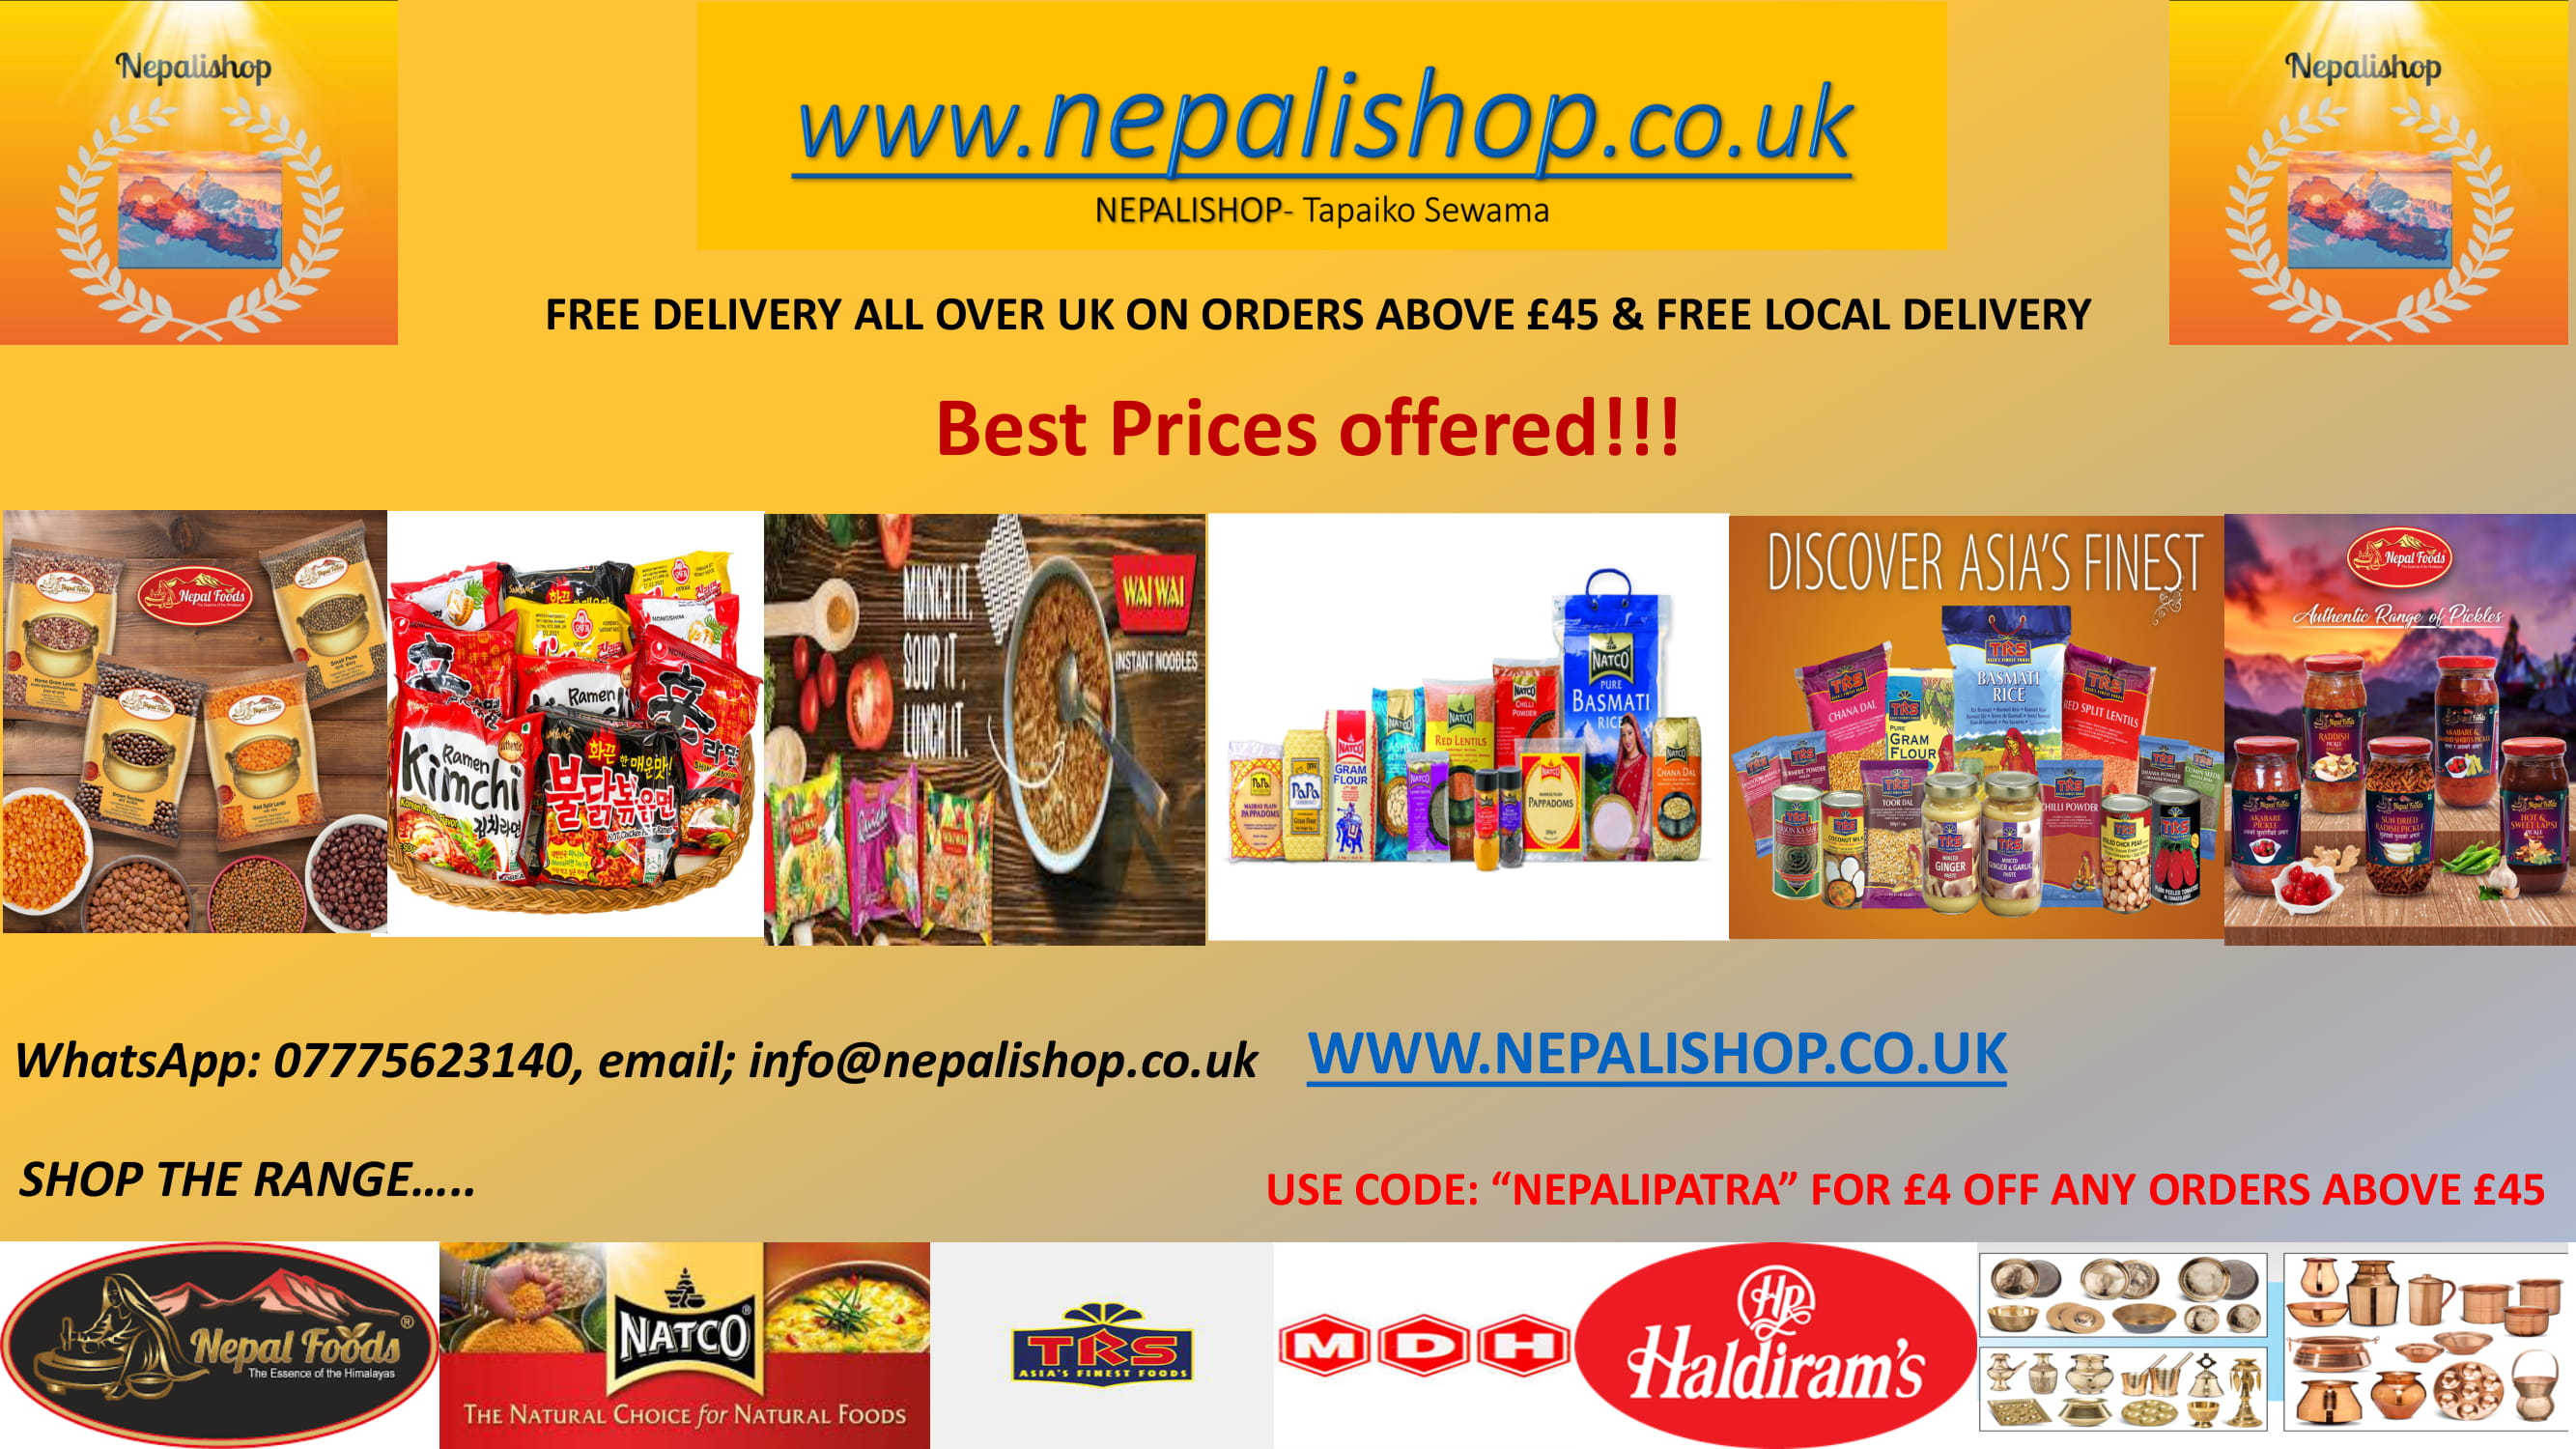 Nepalishop